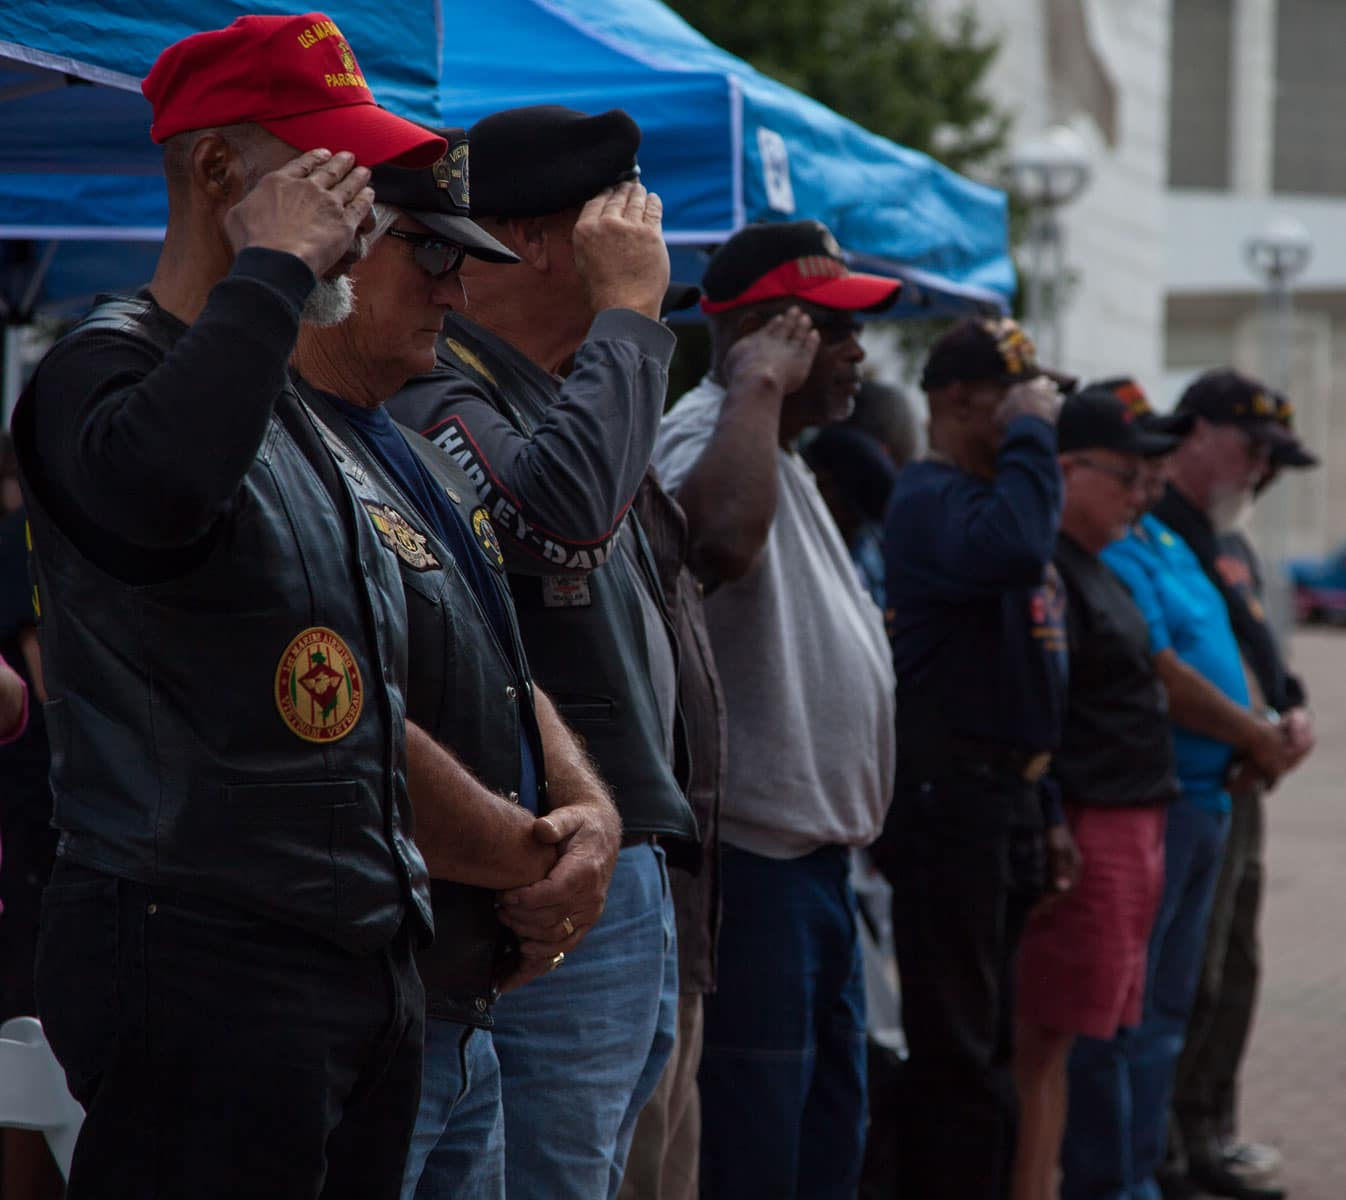 Detroit Vietnam veterans salute to colors during a Vietnam veteran pinning ceremony as part of Marine Week Detroit.